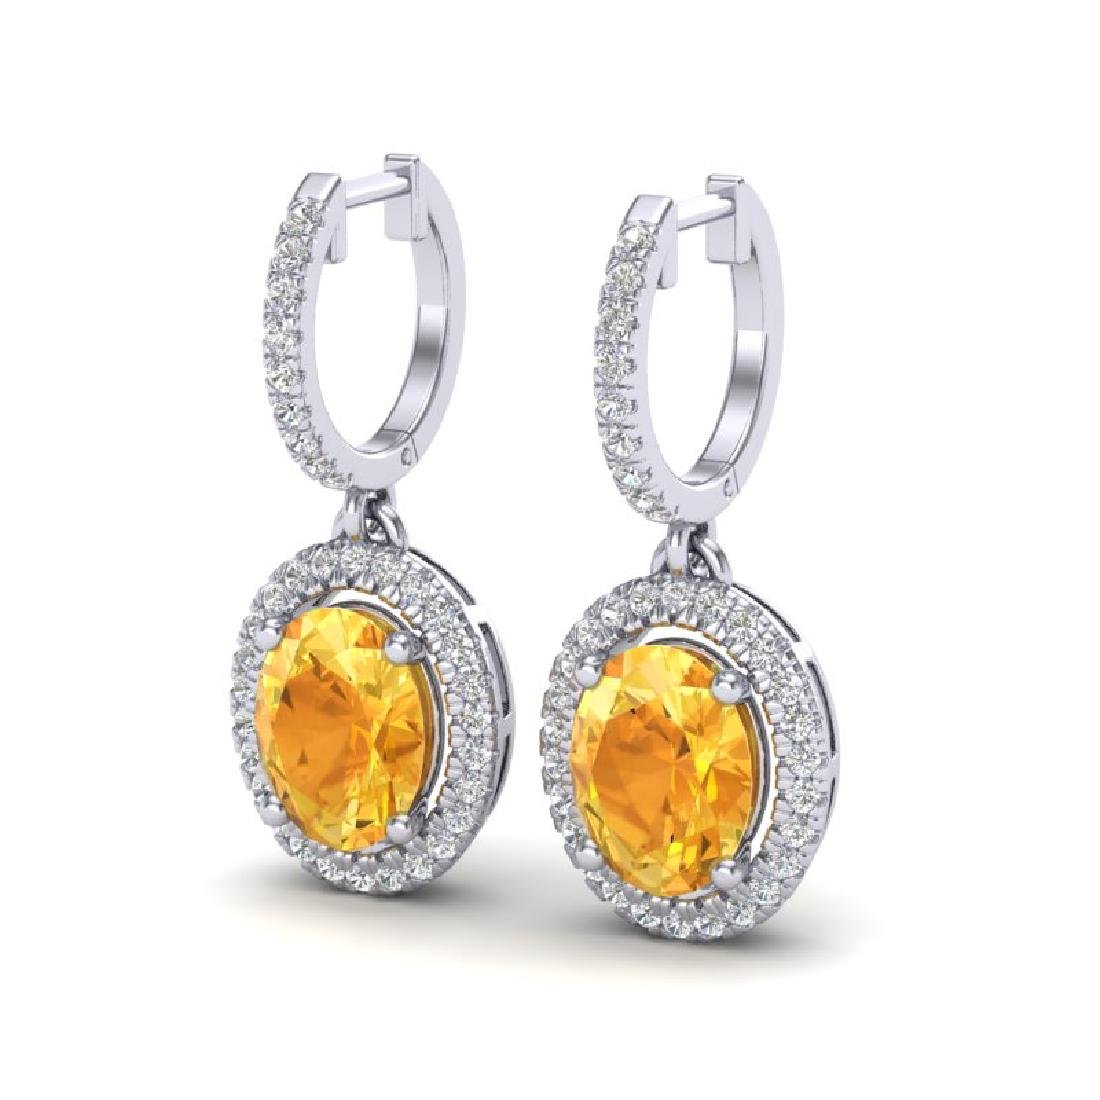 3.50 CTW Citrine & Micro Pave VS/SI Diamond Earrings